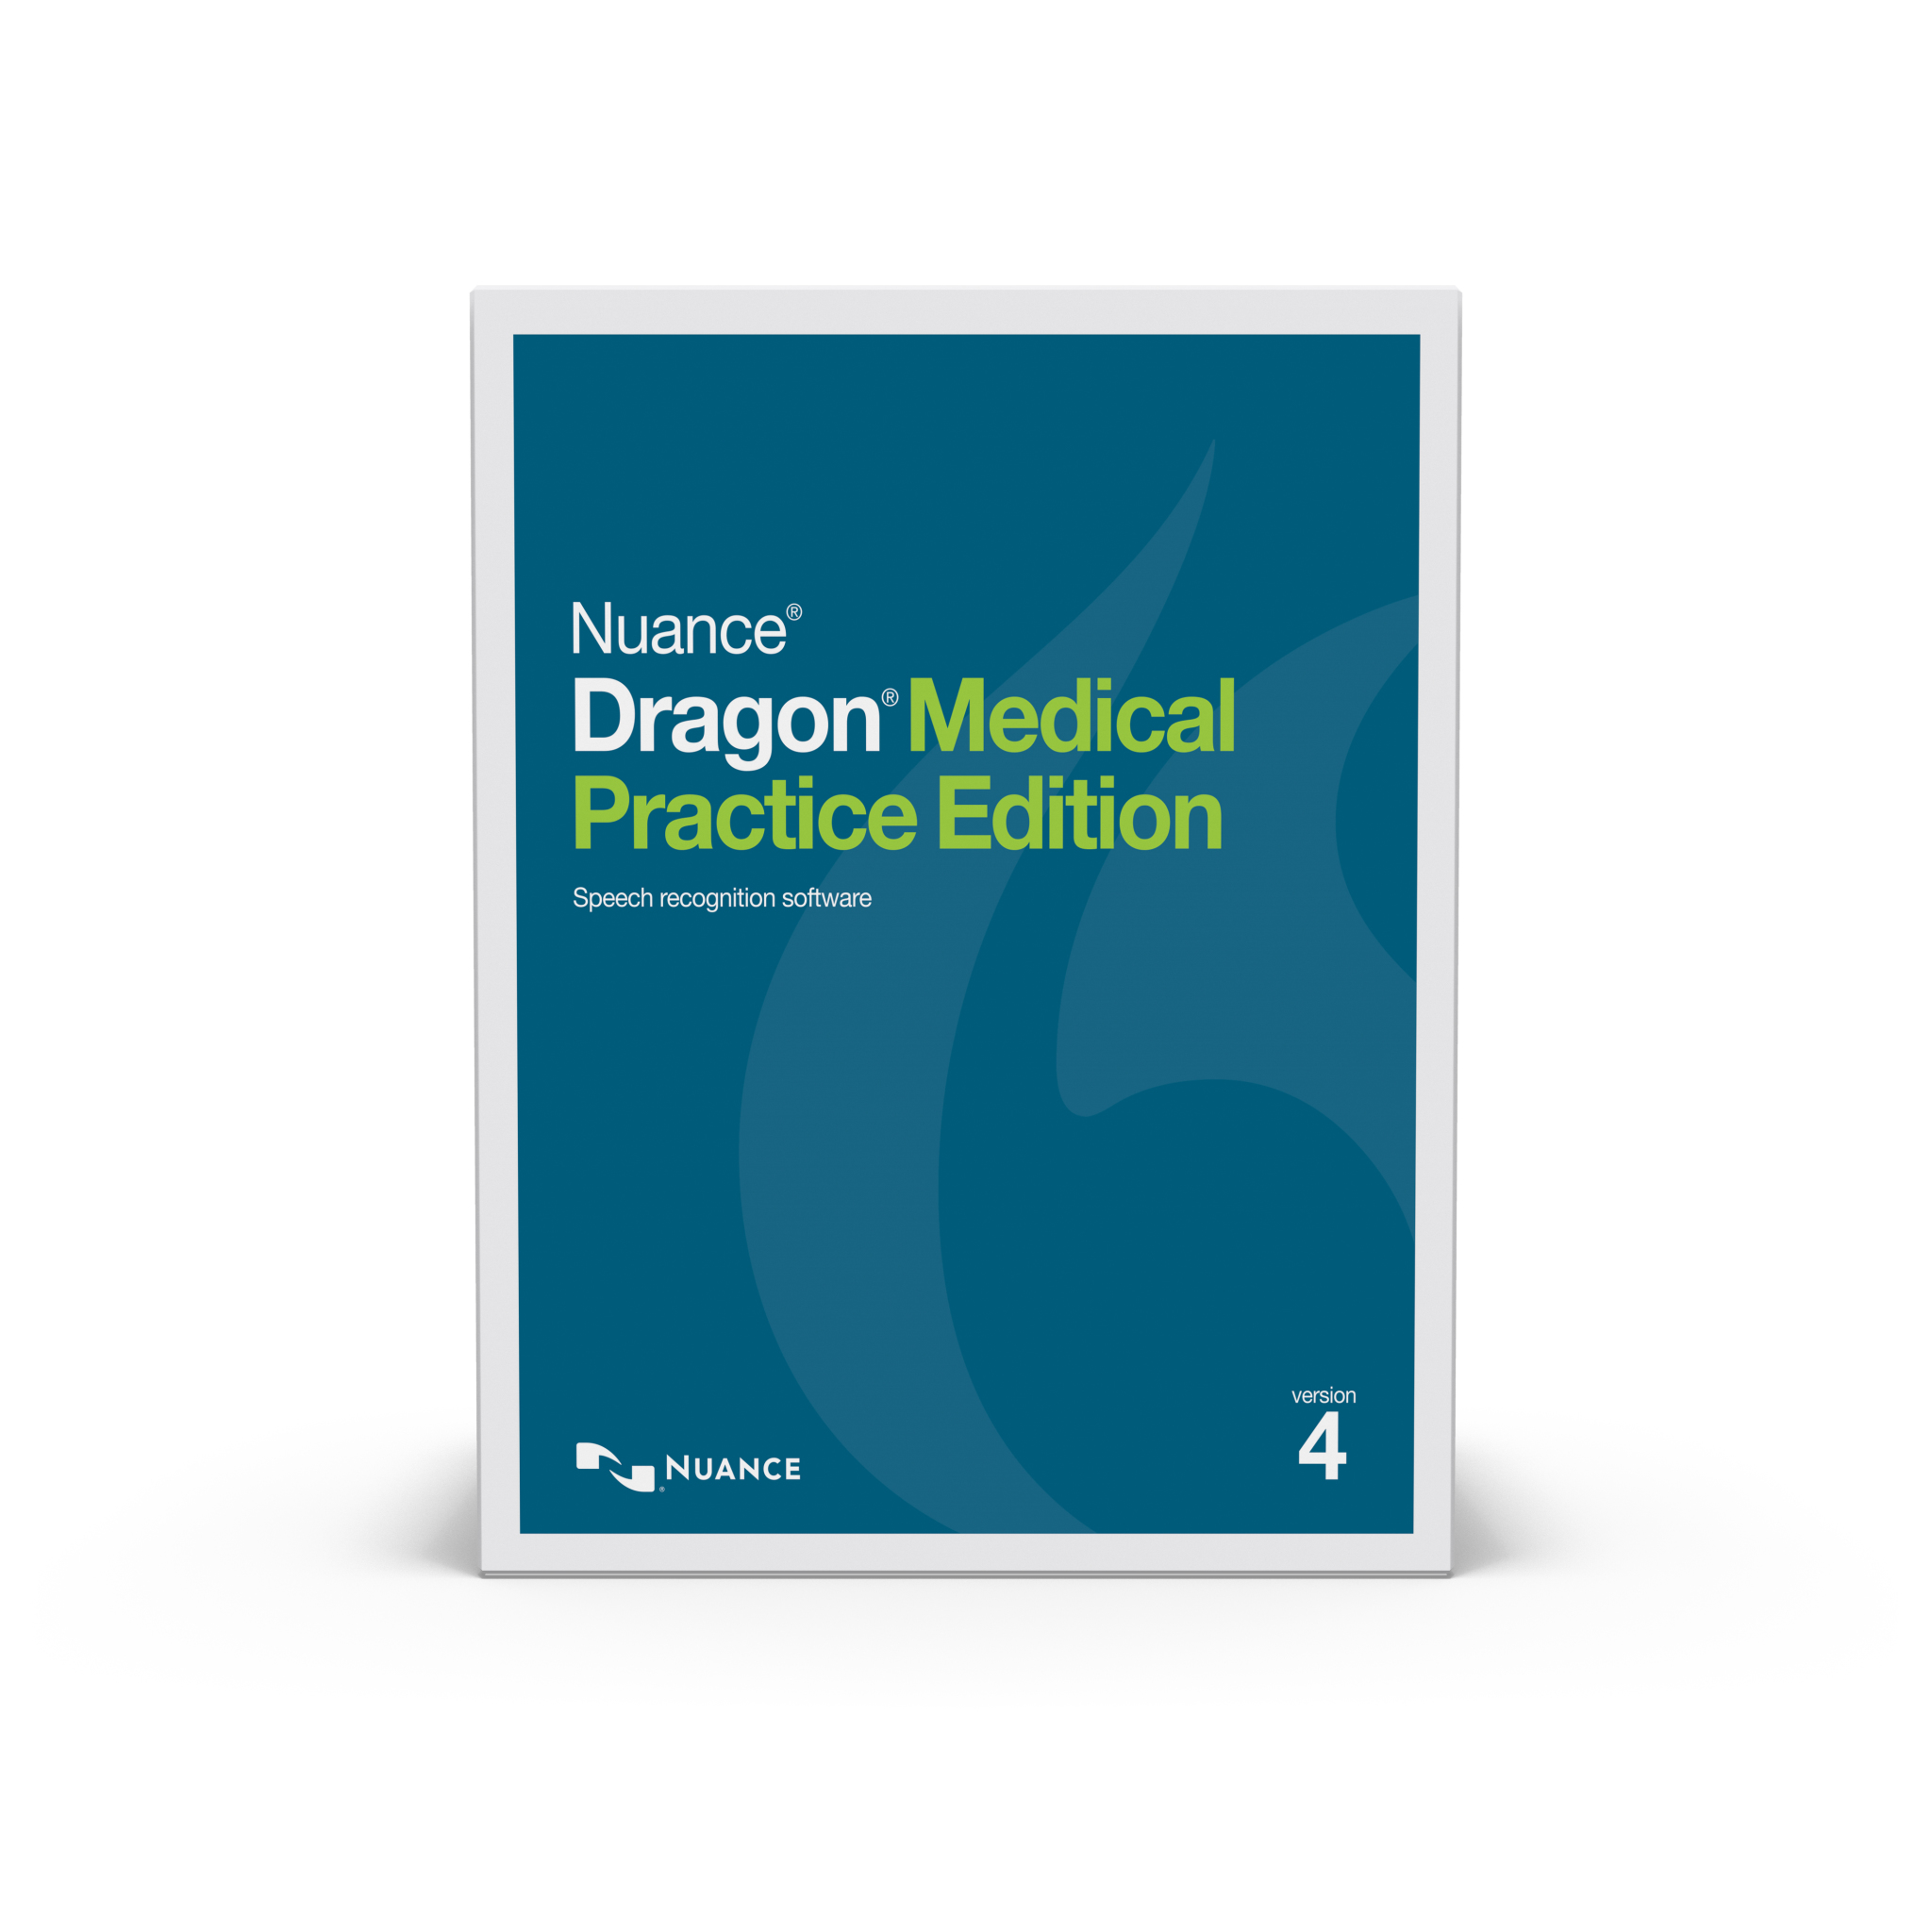 NUA-A709A-X00-4.0 DRAGON MEDICAL PRACTICE EDITION 4